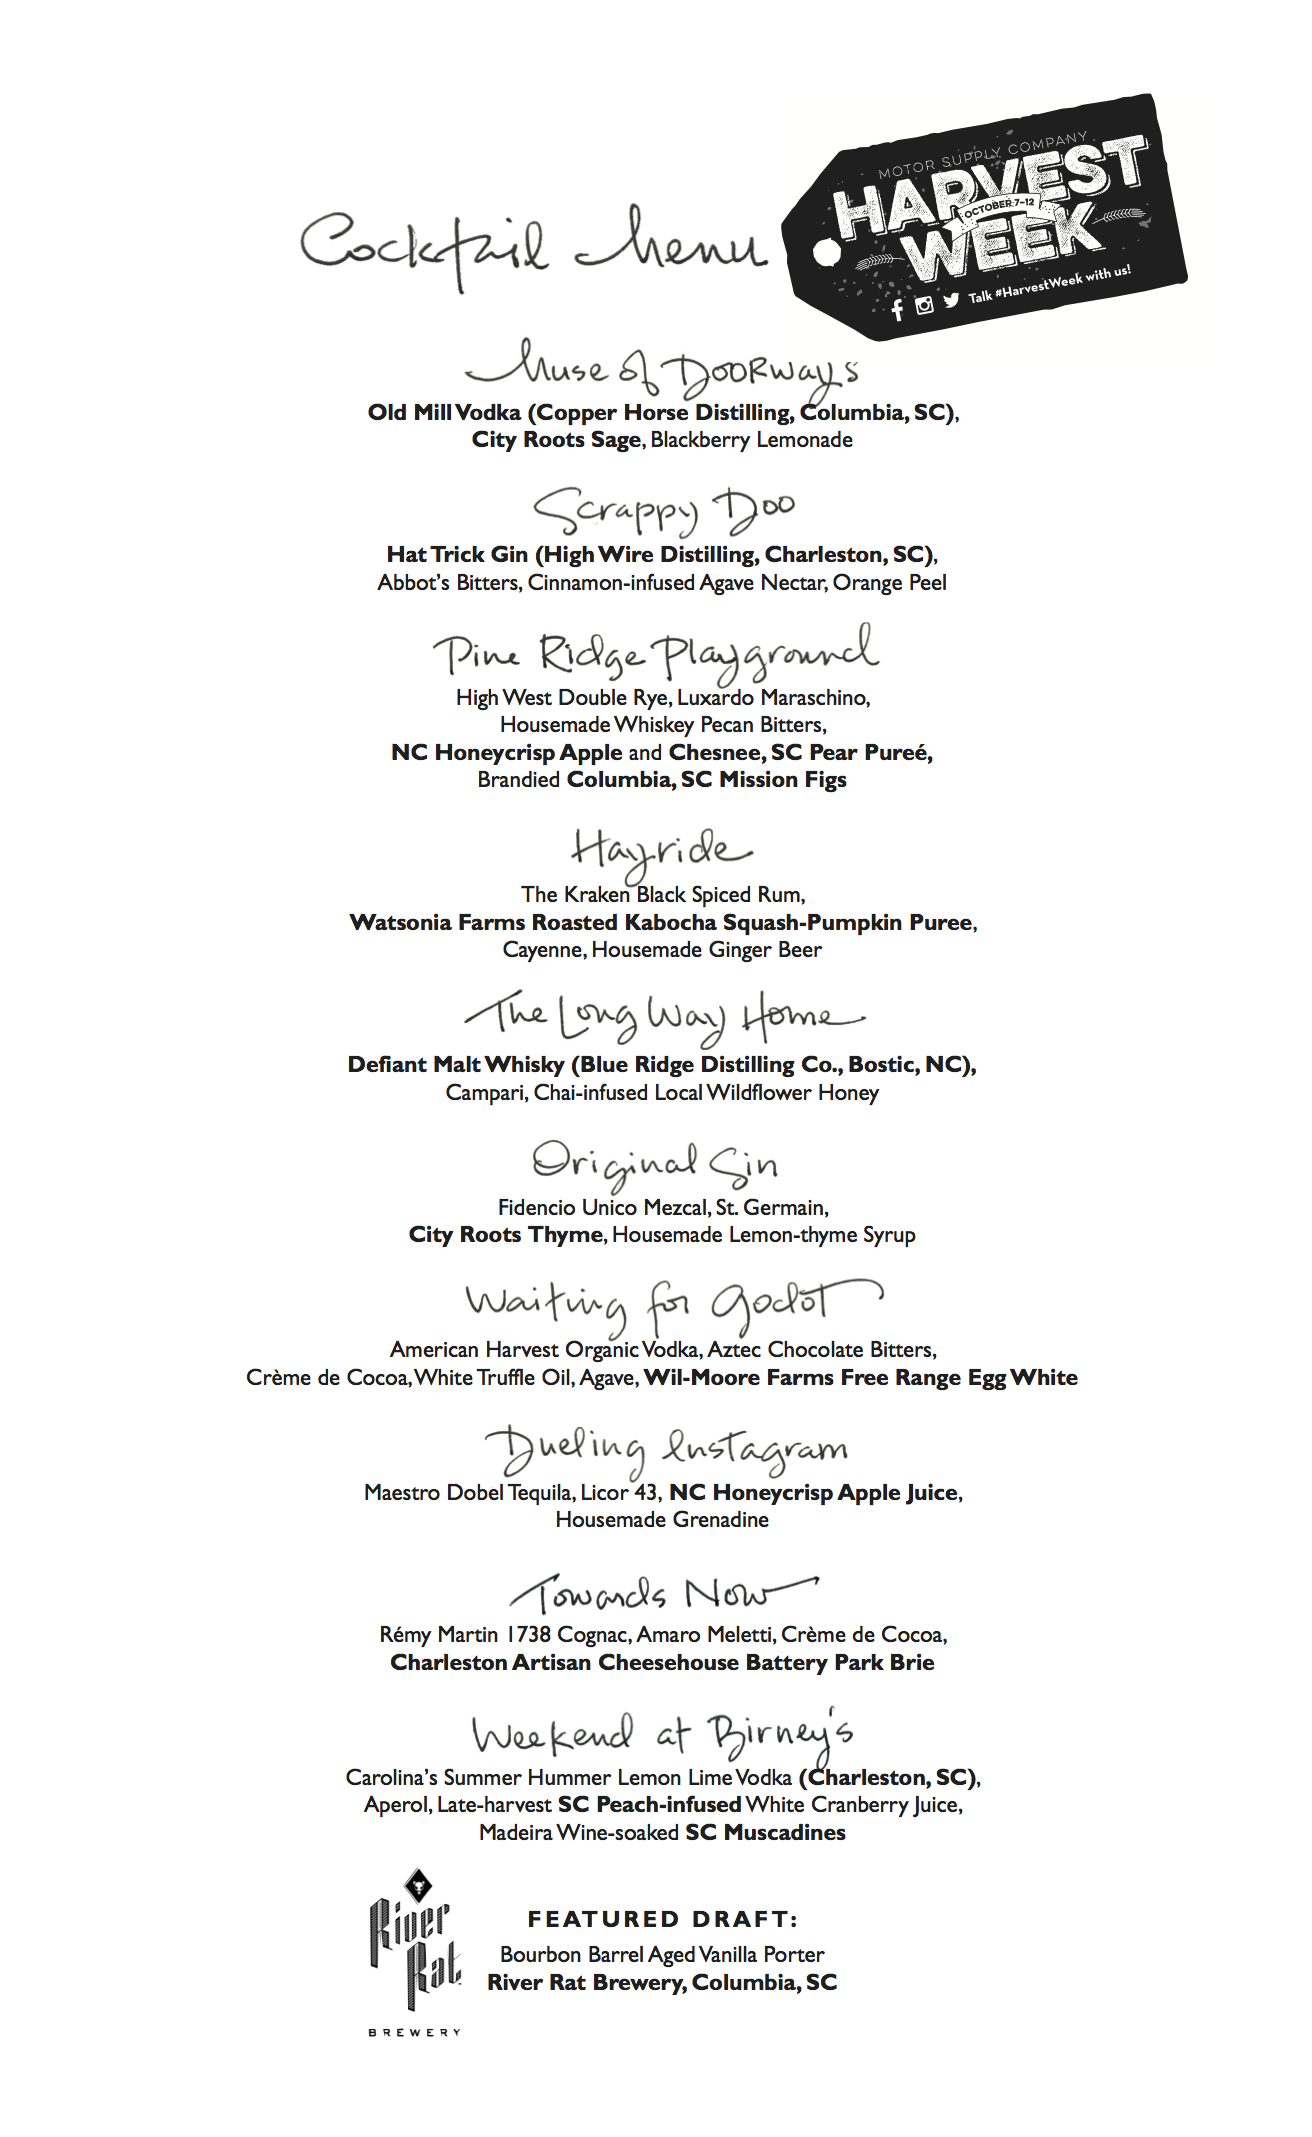 fall harvest week 2014 cocktail and dinner menus revealed